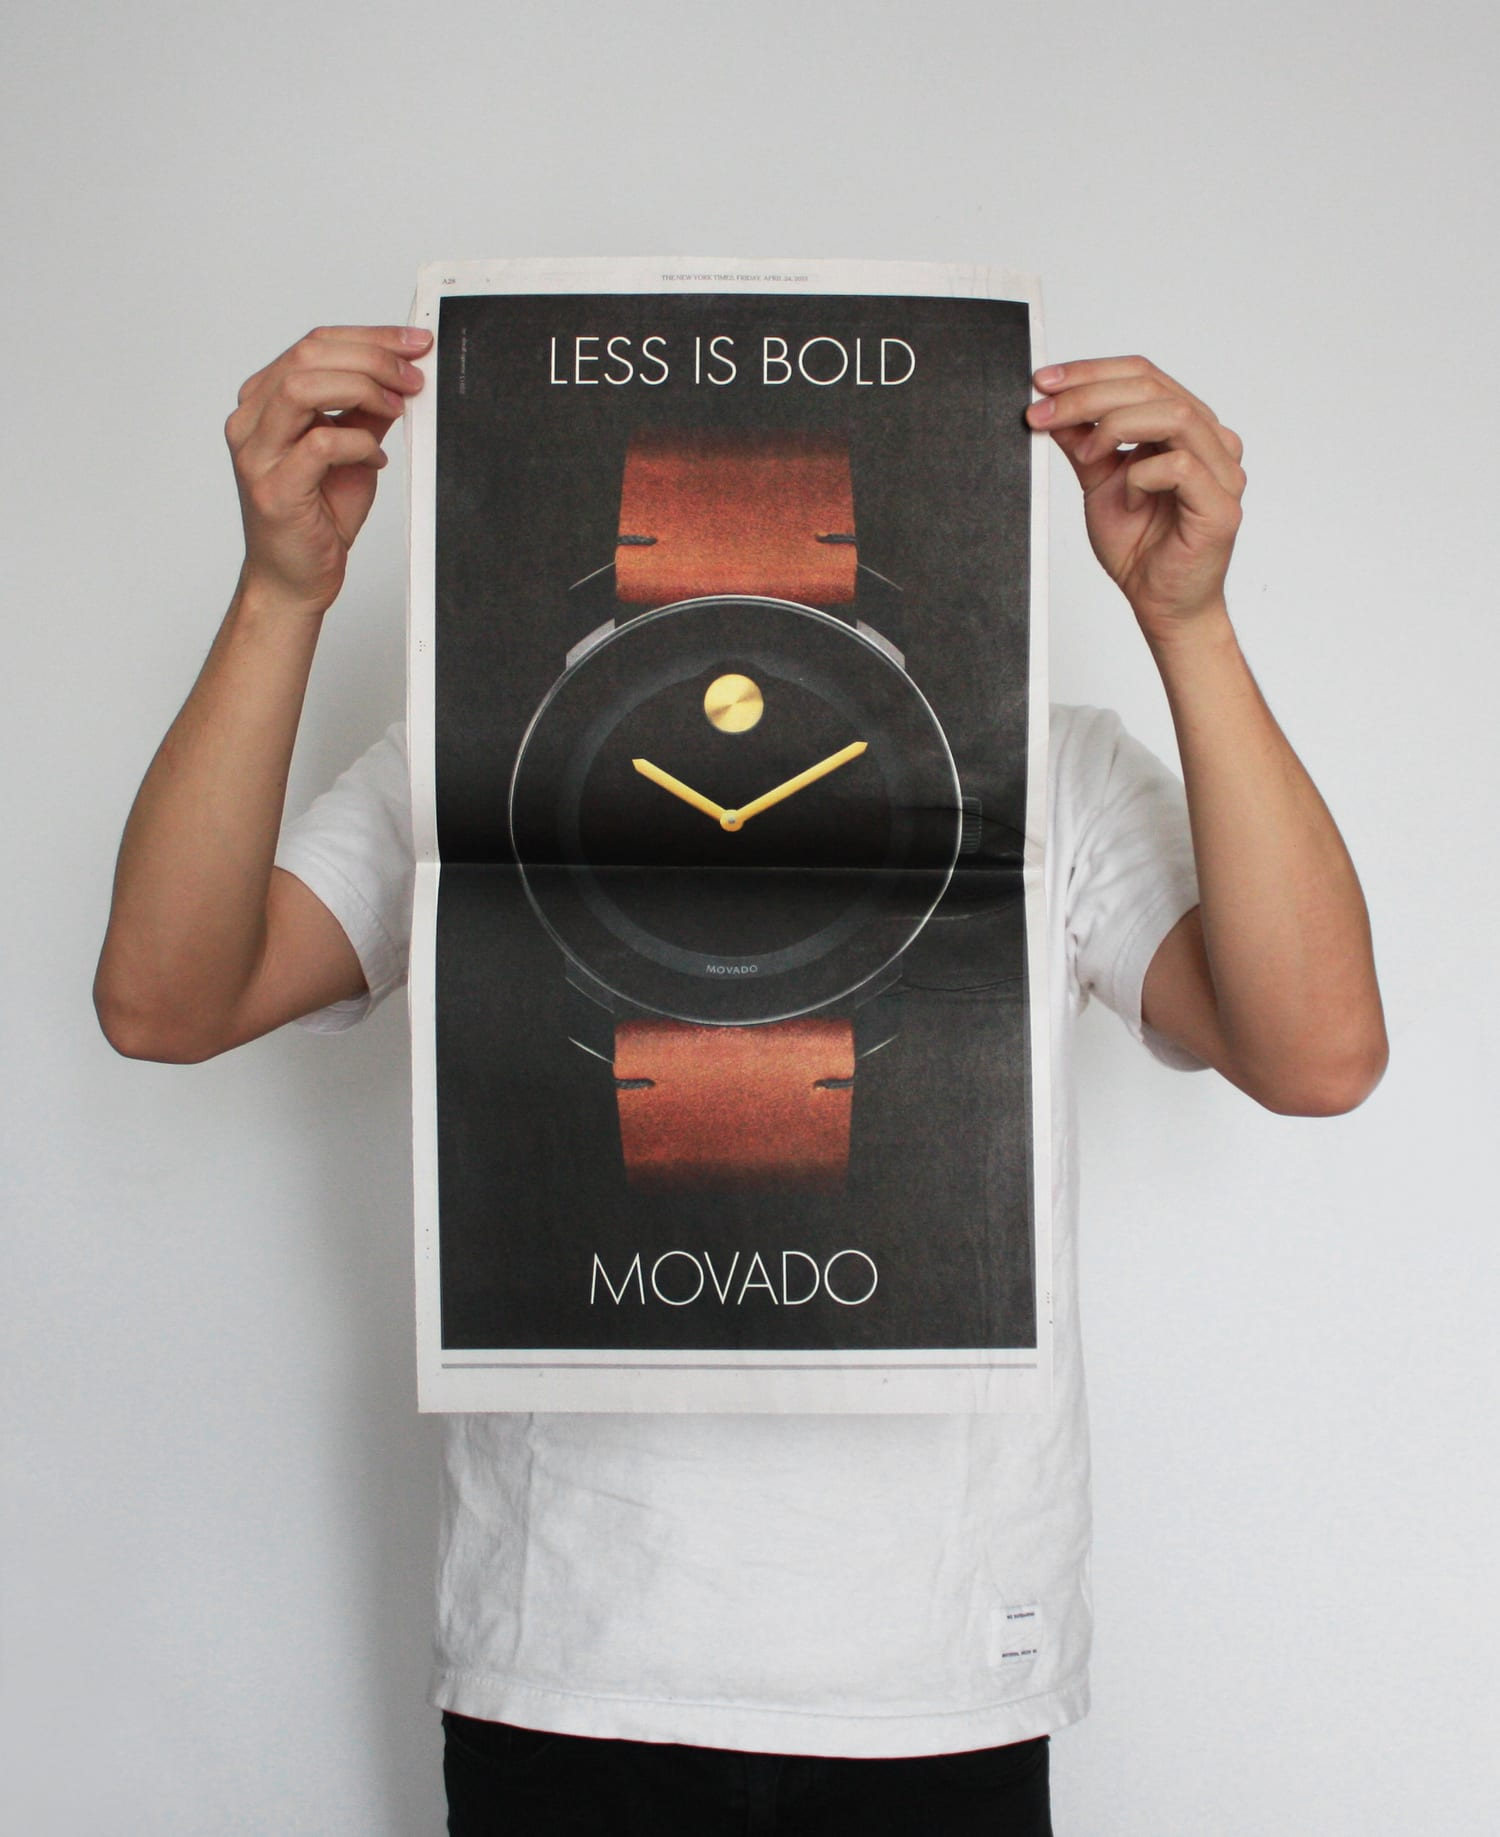 MOVADO - LESS IS BOLD